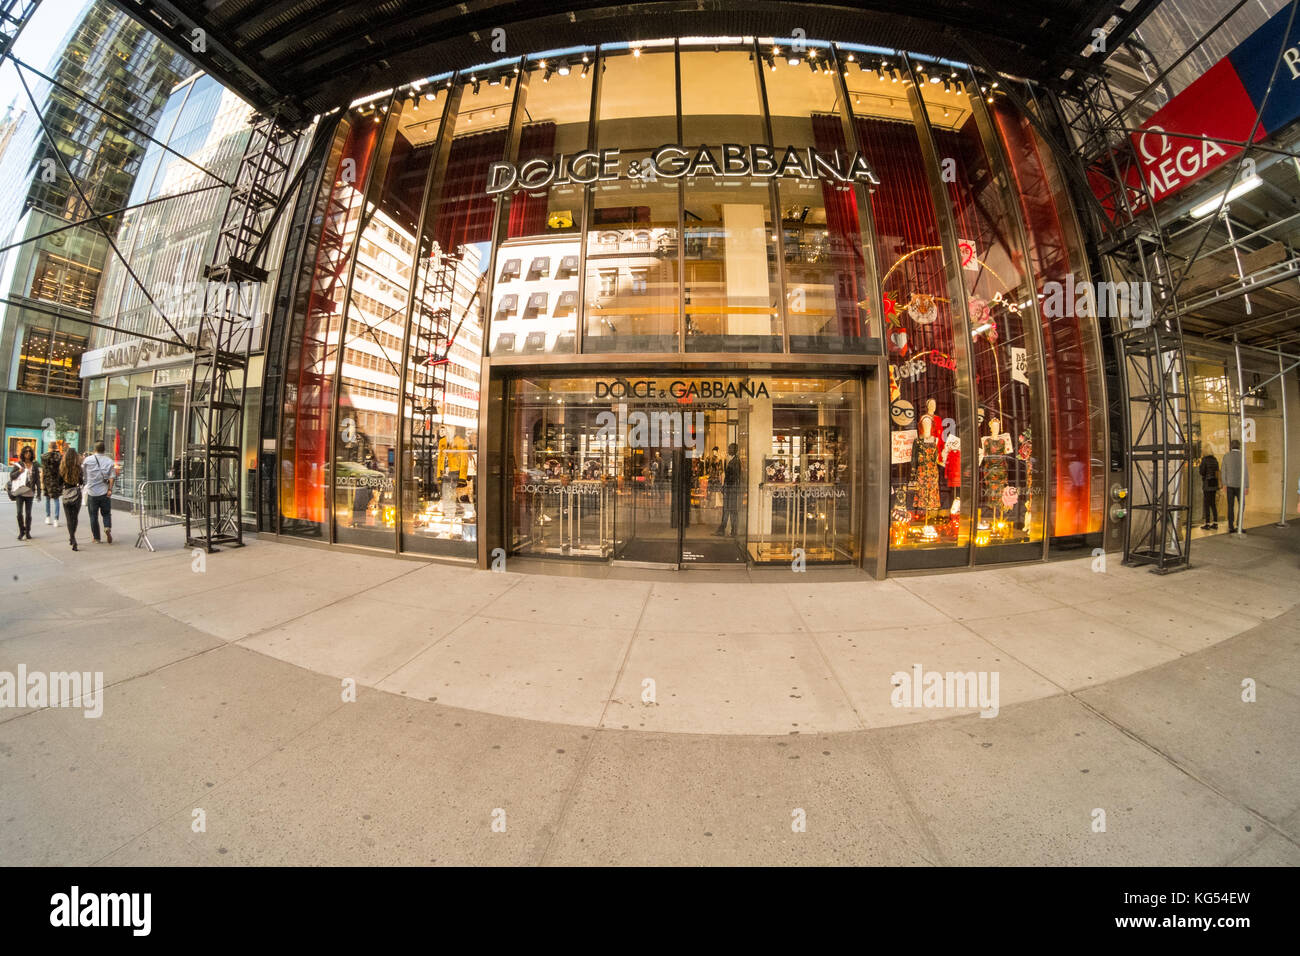 736afc32ac Dolce & Gabbana's store, Fifth Avenue, New York City, NY, United States of  America, U.S.A